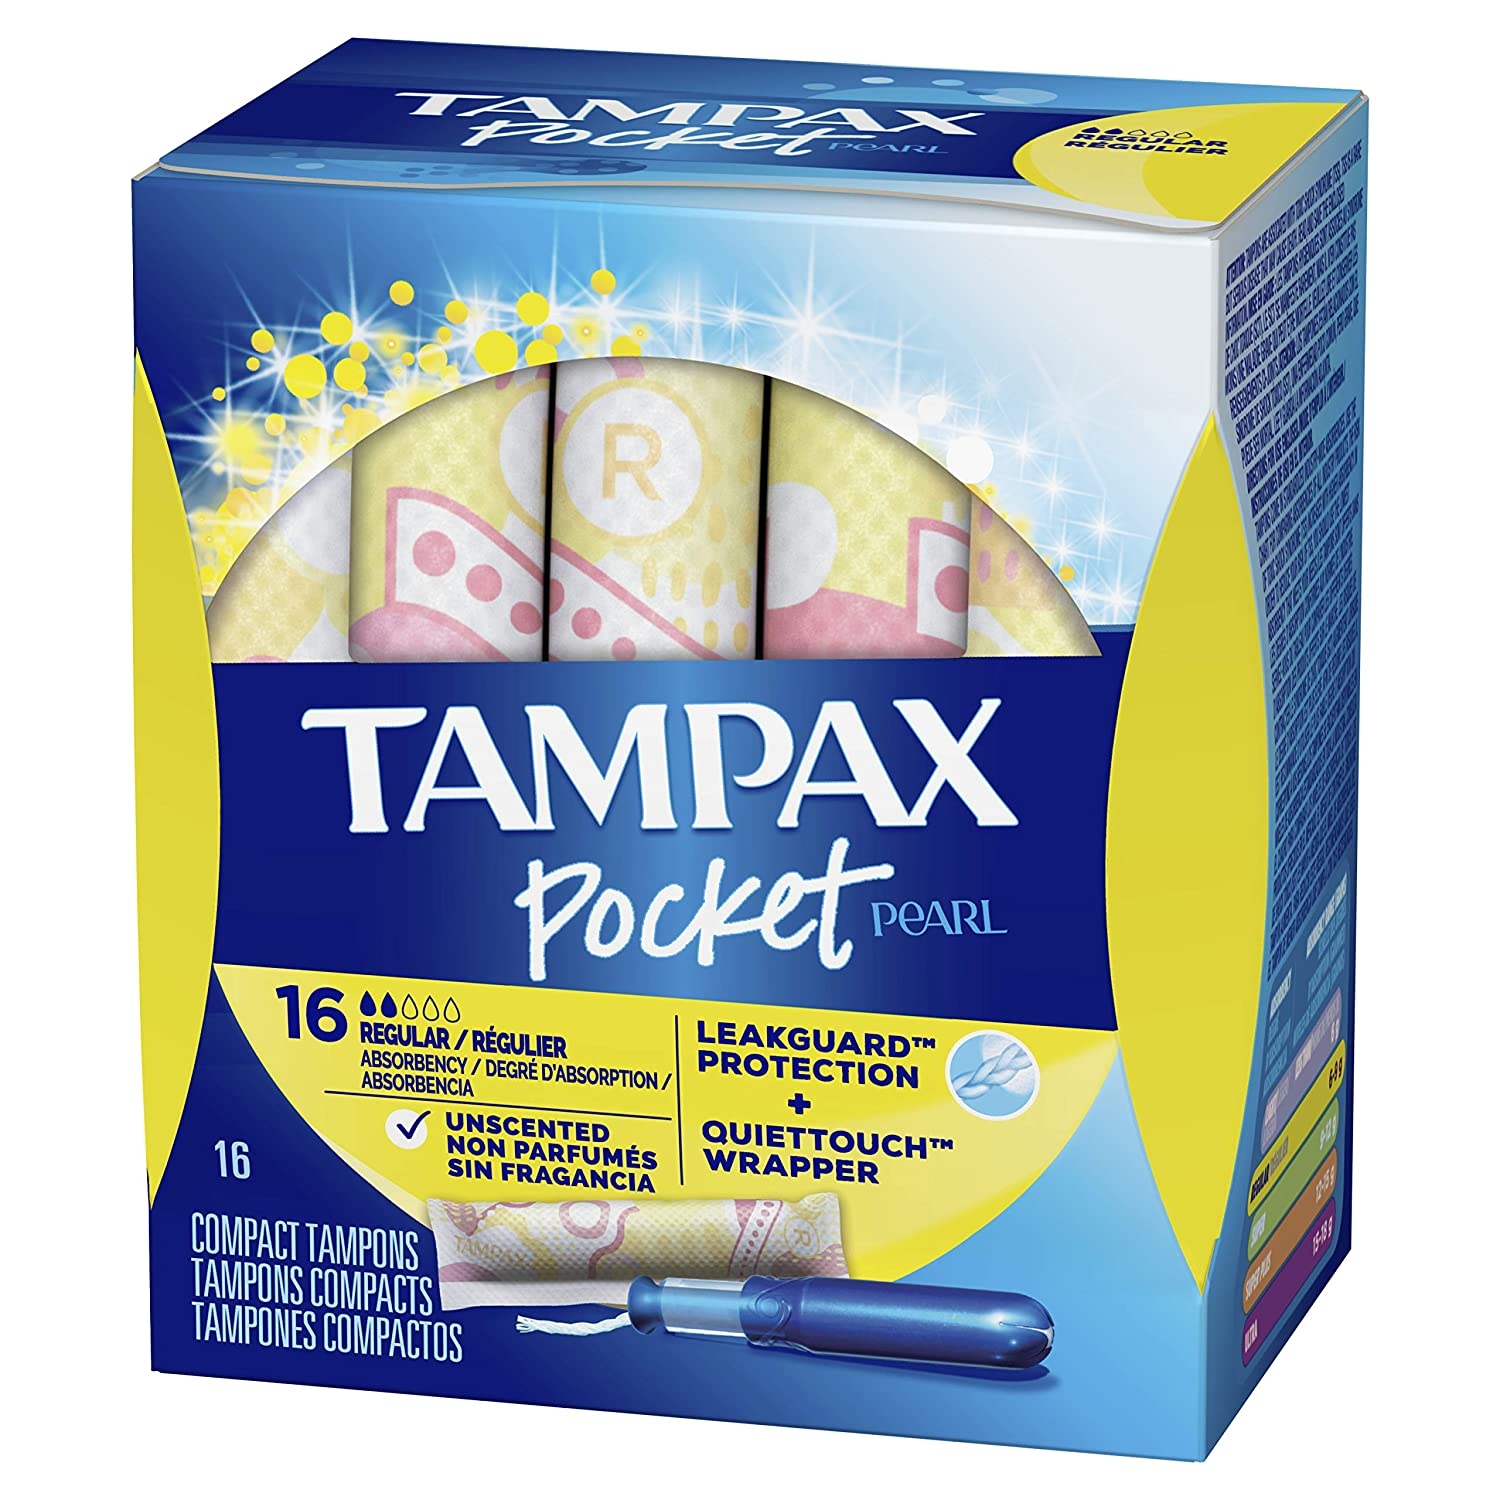 Tampax Pocket Pearl Tampons Regular Absorbency with LeakGuard Braid, Unscented, 16 Count